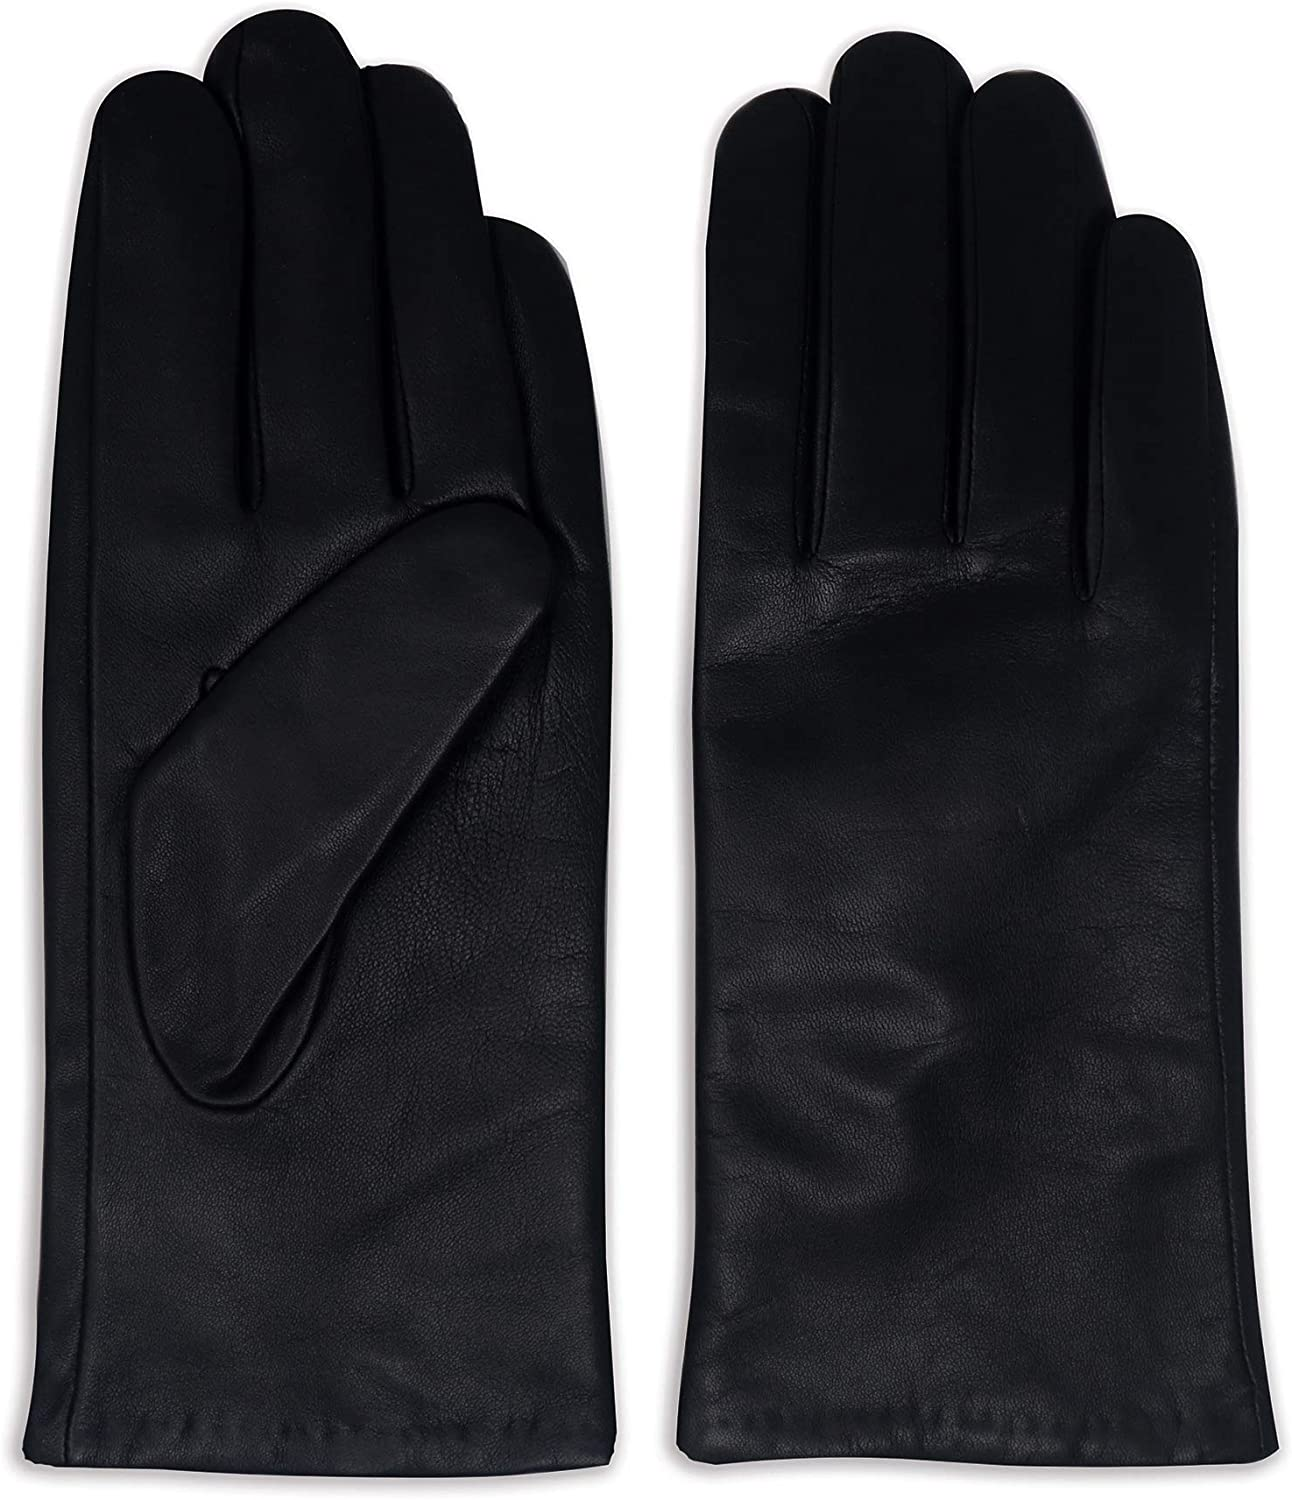 Women's Luxuriously Soft Leather Colorful Fashion Dress Gloves with Cashmere Wool Lining